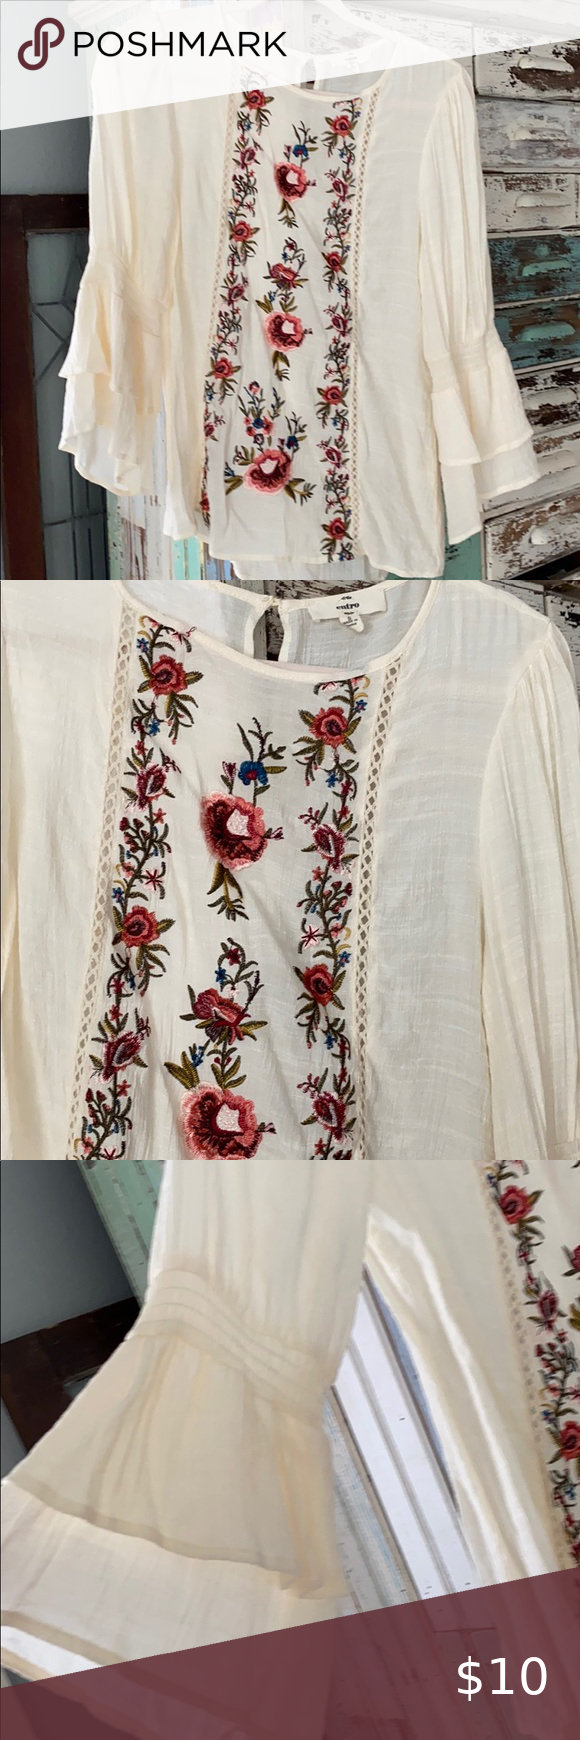 Entro top in 2020 Embroidered top, Tops, Clothes design